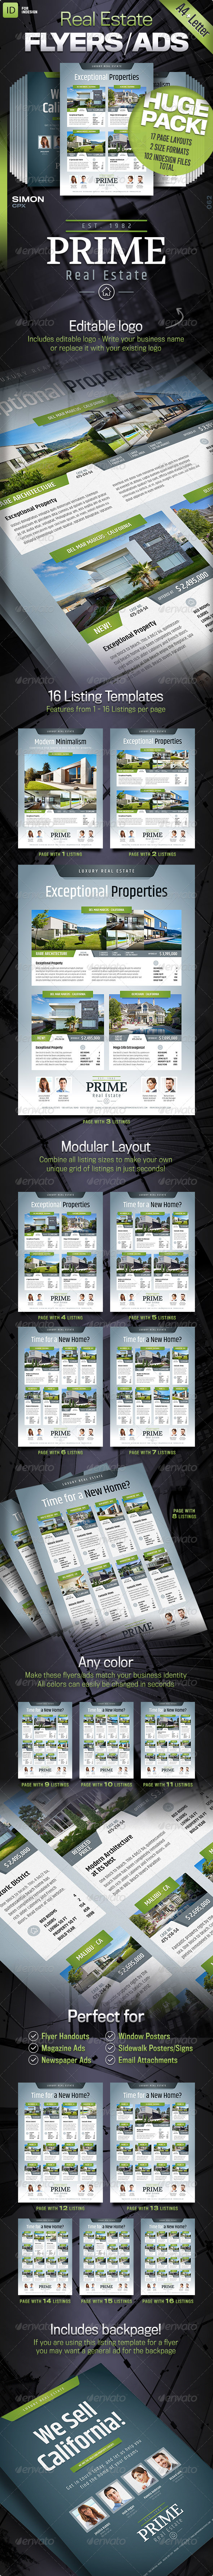 GraphicRiver Real Estate Flyers Ads Prime 8428356